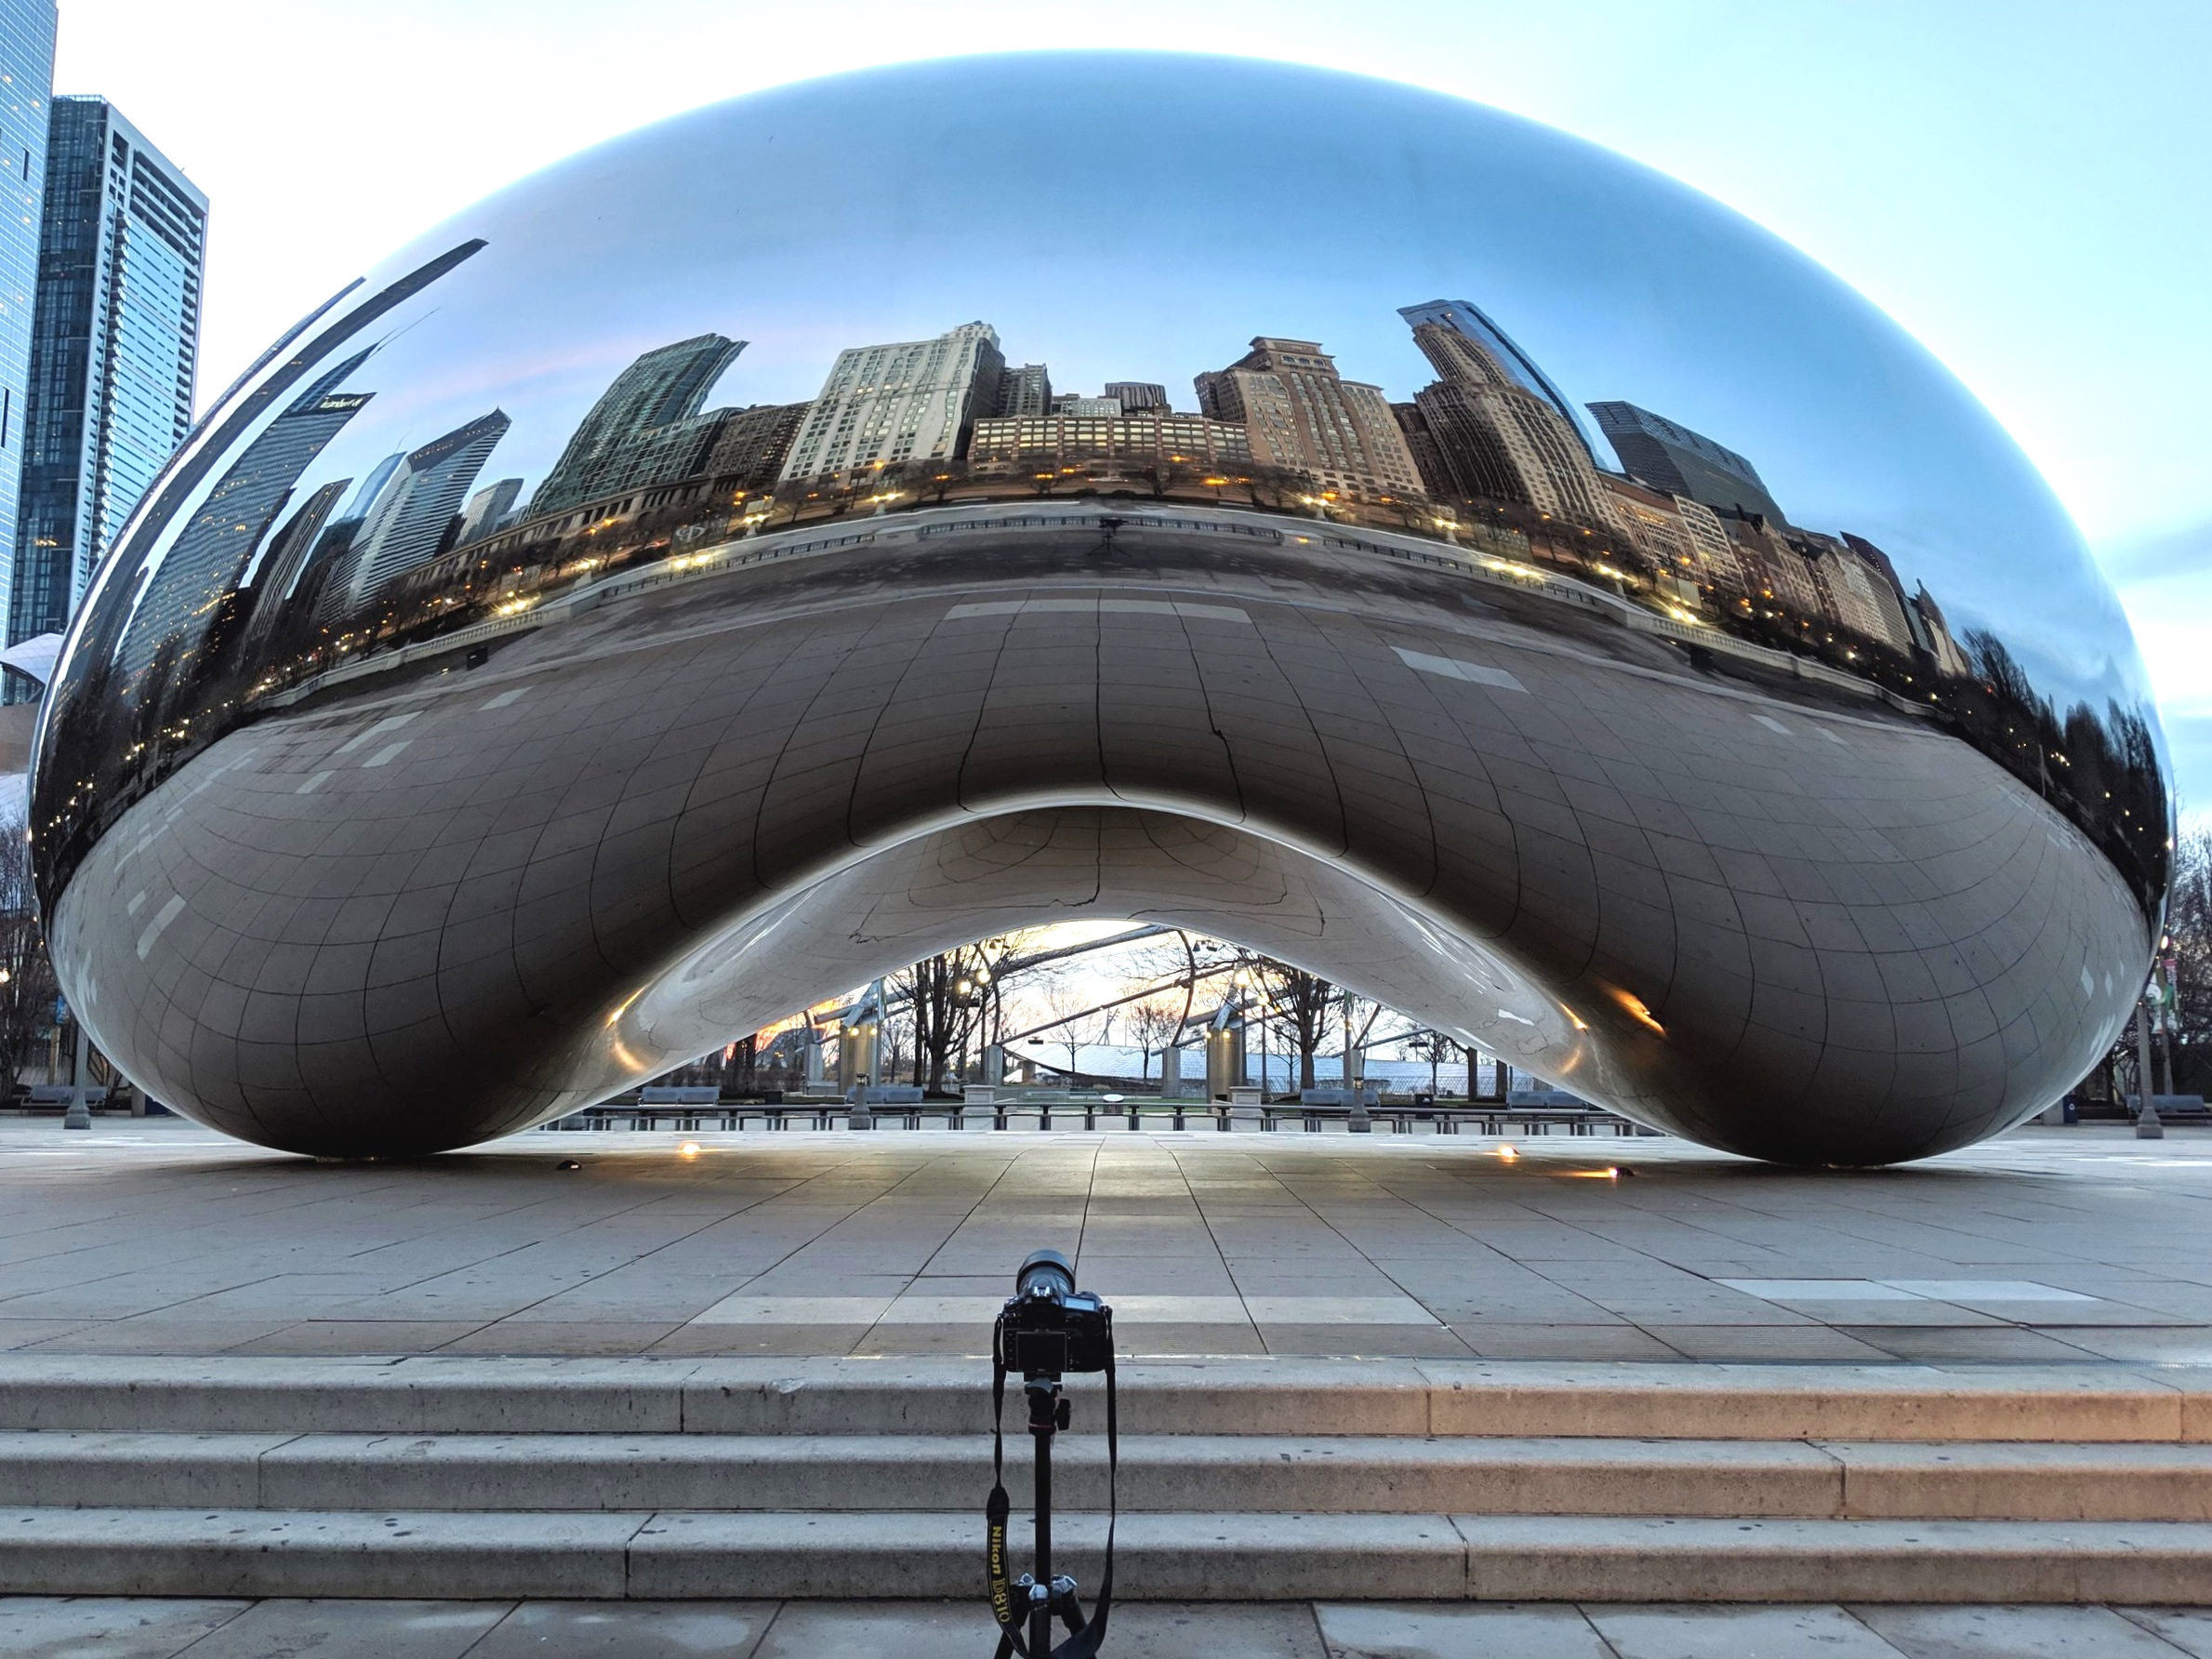 Camera in front of the Bean at Sunrise